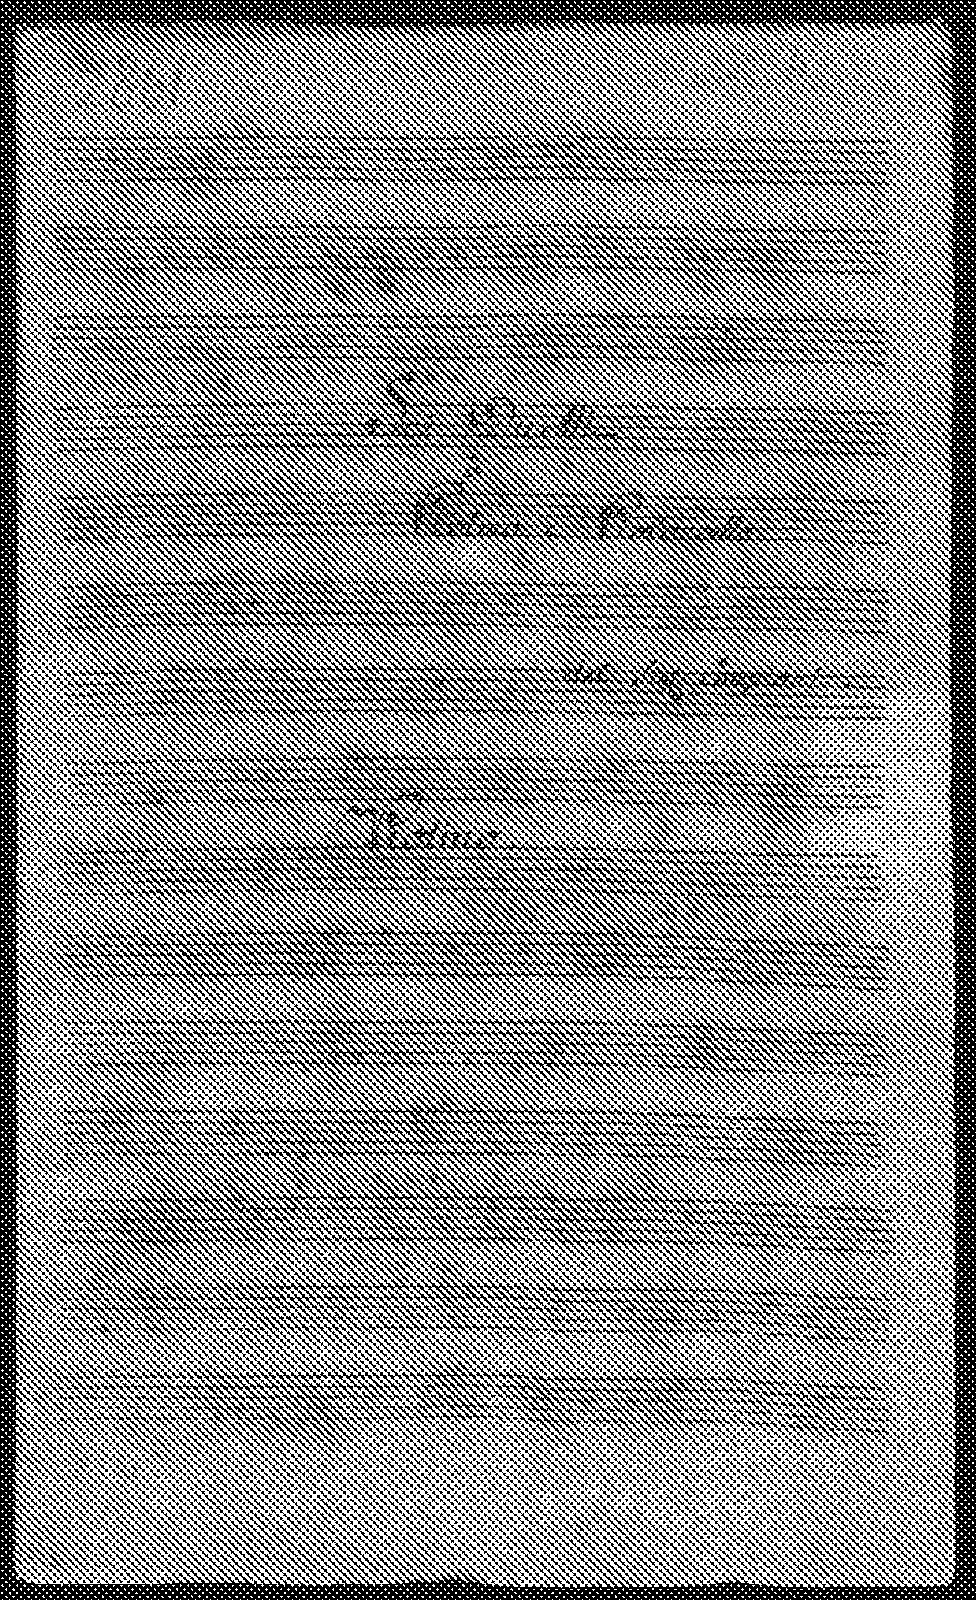 PMLP194619-Campioni - 6 Duos for Violin and Cello (1780) manuscript vln.pdf